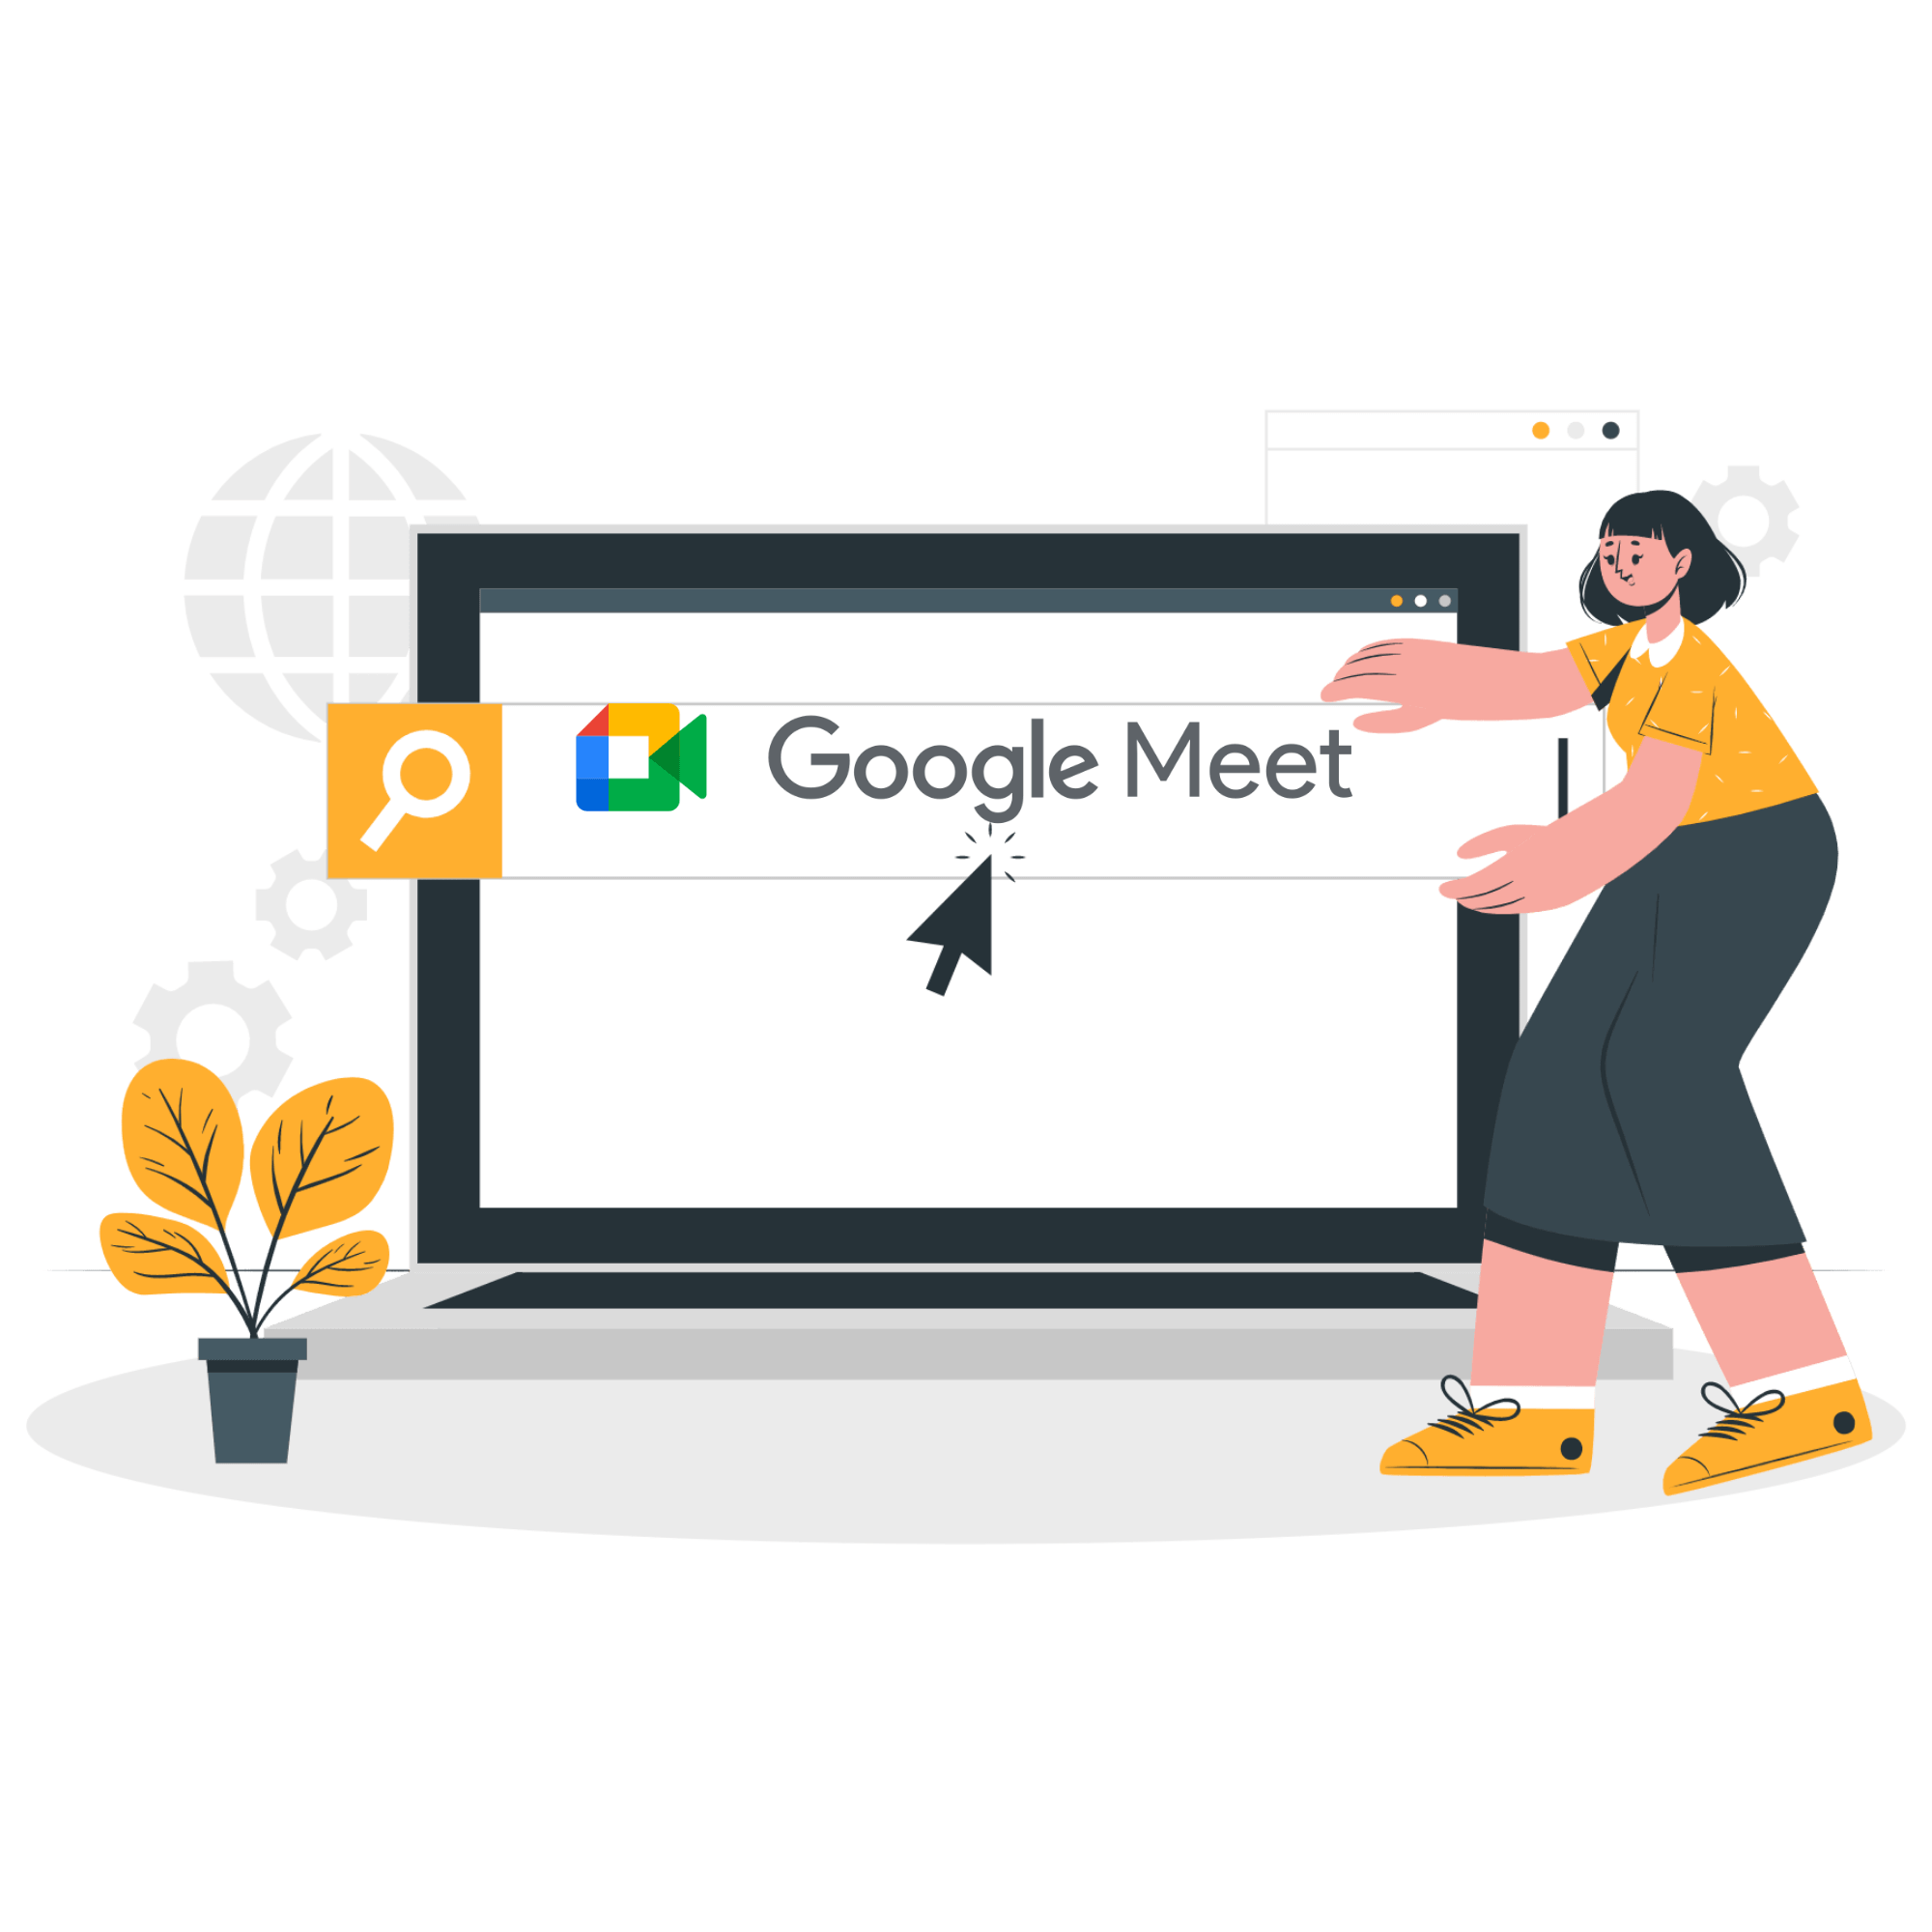 Google Meet Tutorial_ Come Fare Videoconferenze Online (Gratis!) nel 2021 - come funziona google meet (1)